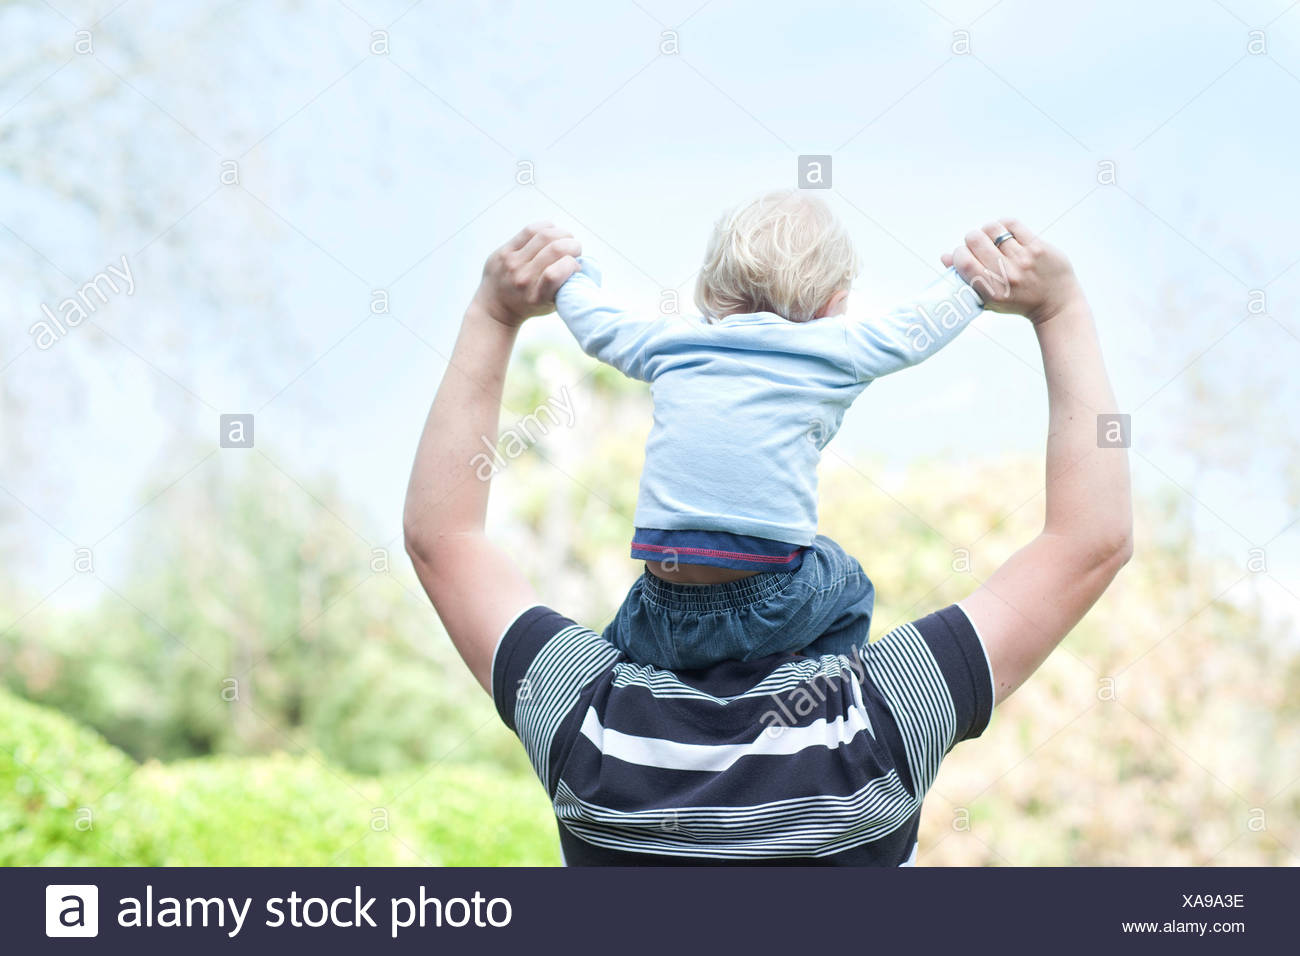 Father with baby son on shoulders - Stock Image